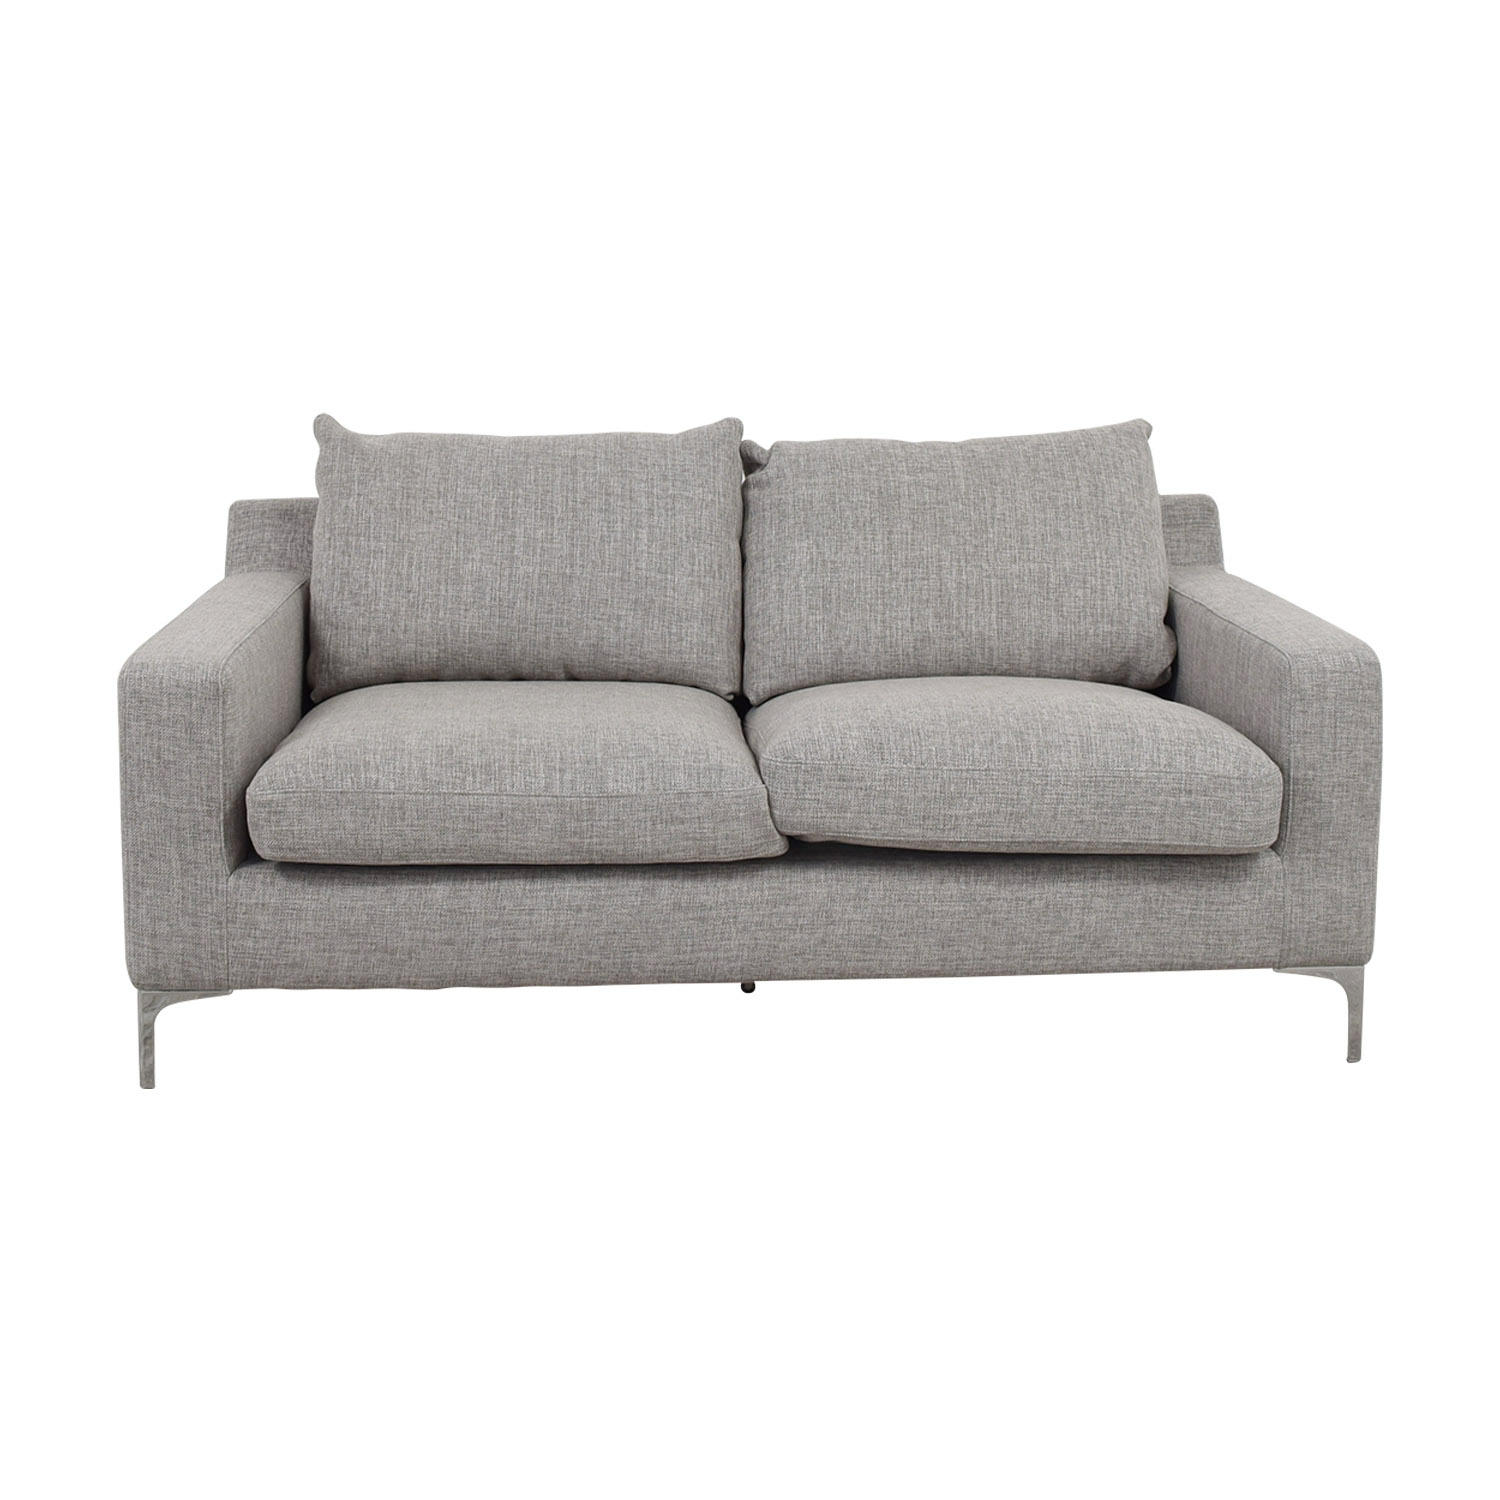 Sloan Grey Two-Cushion Sofa Sofas